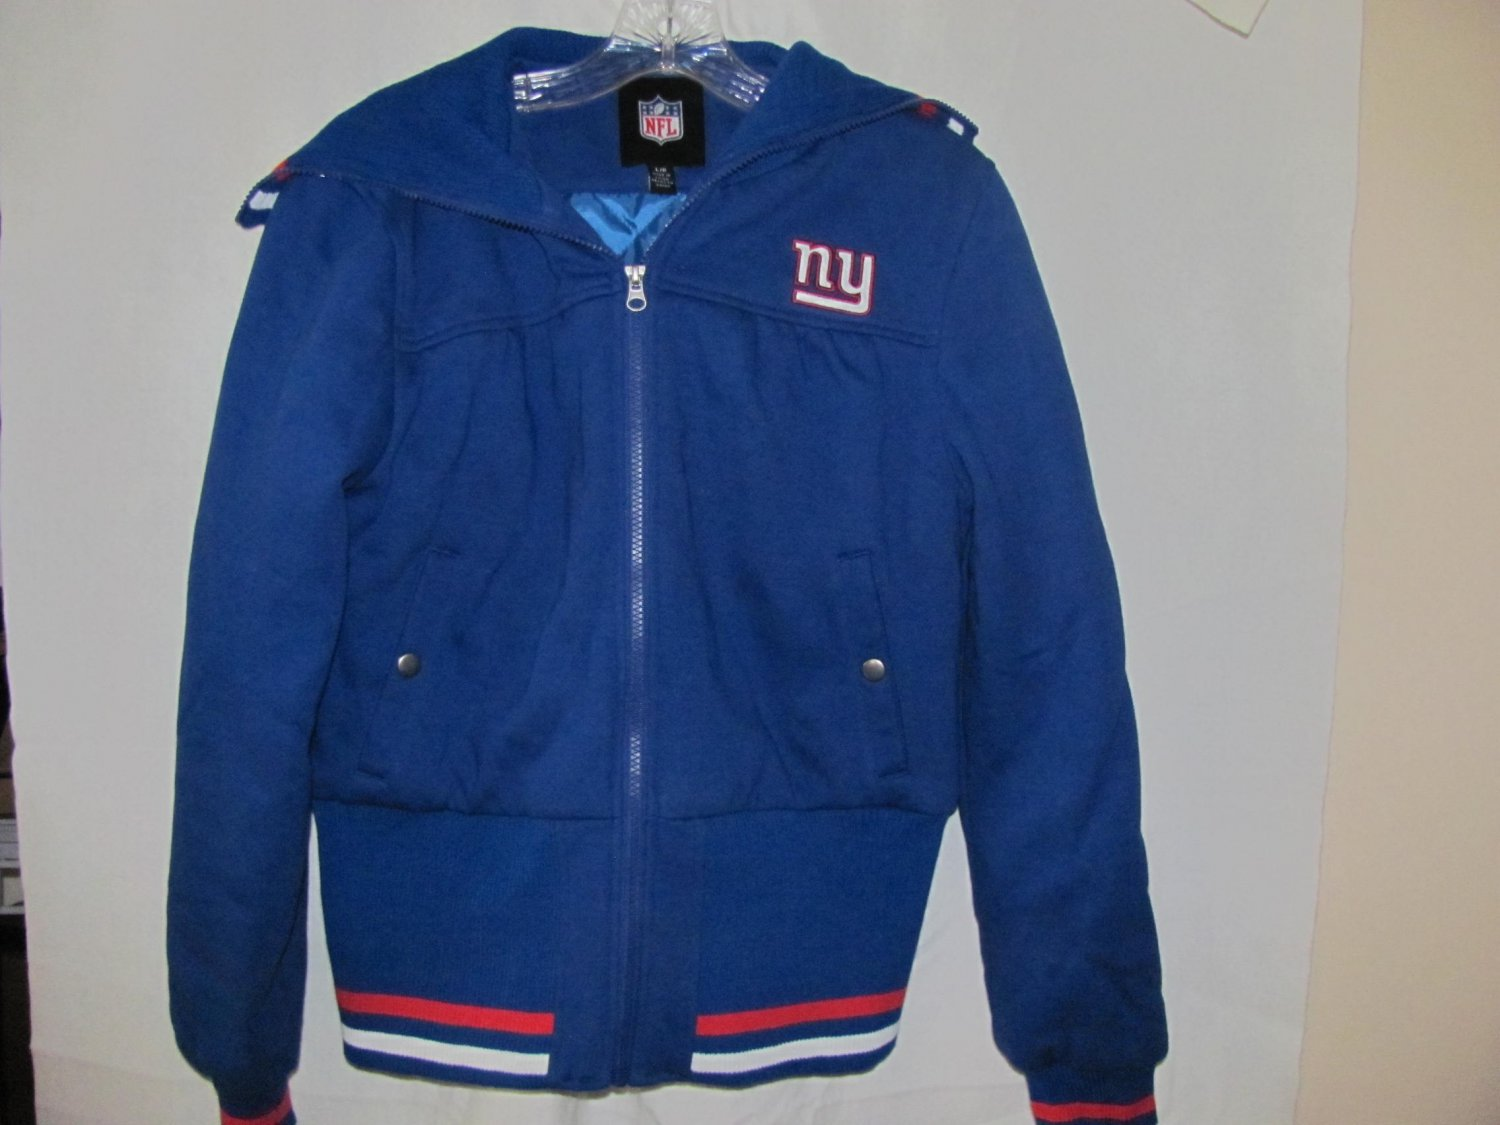 NFL Womens Size Large New York Giants Jacket